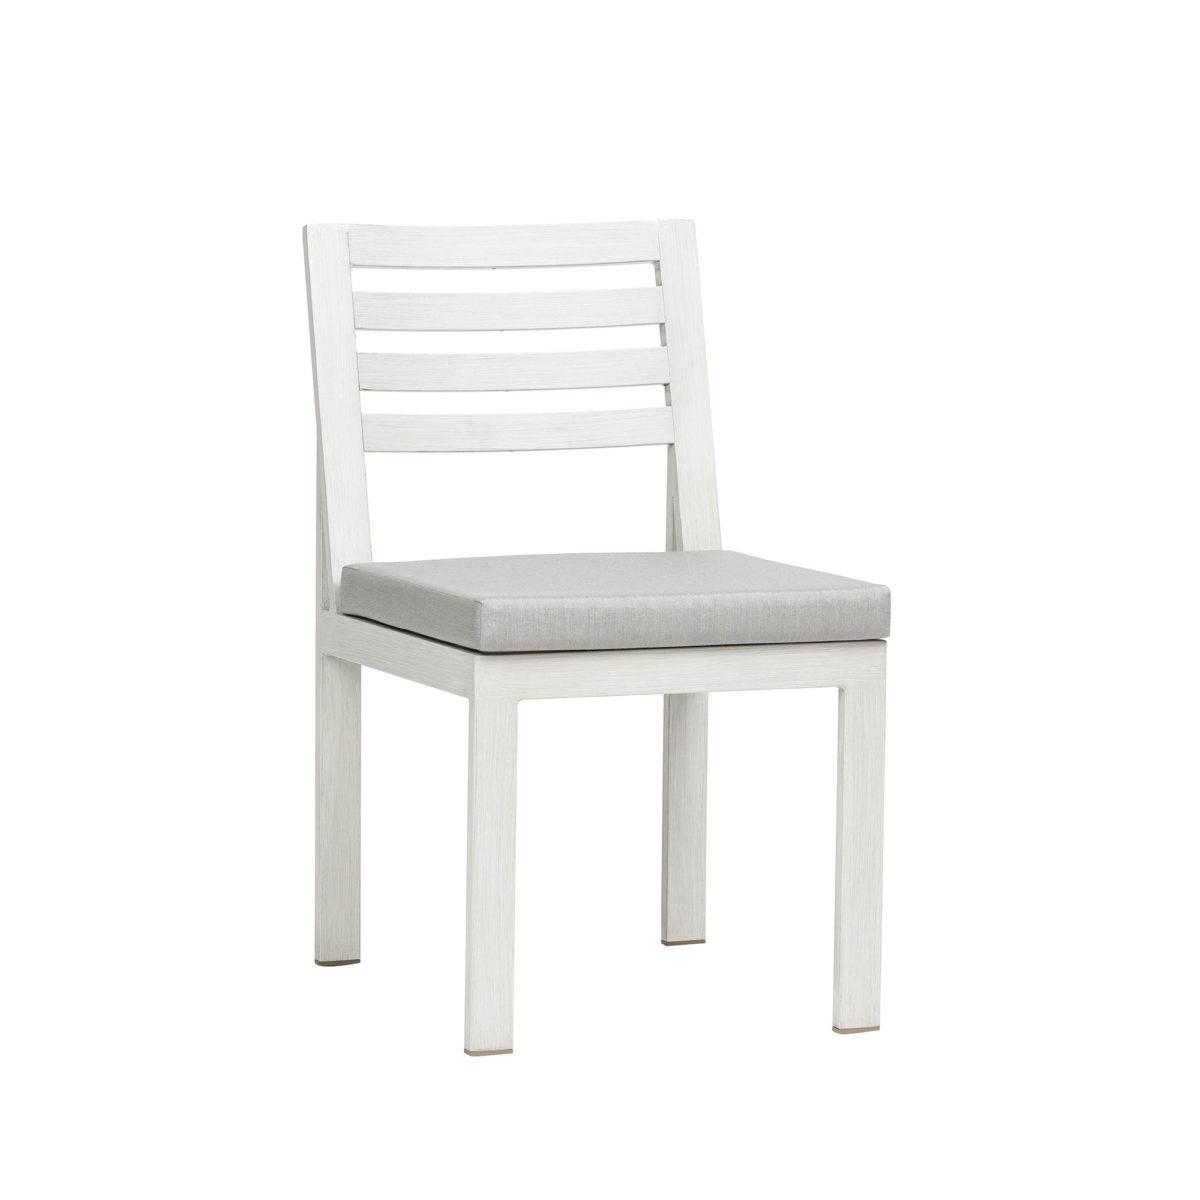 The Park Lane dining side chair.